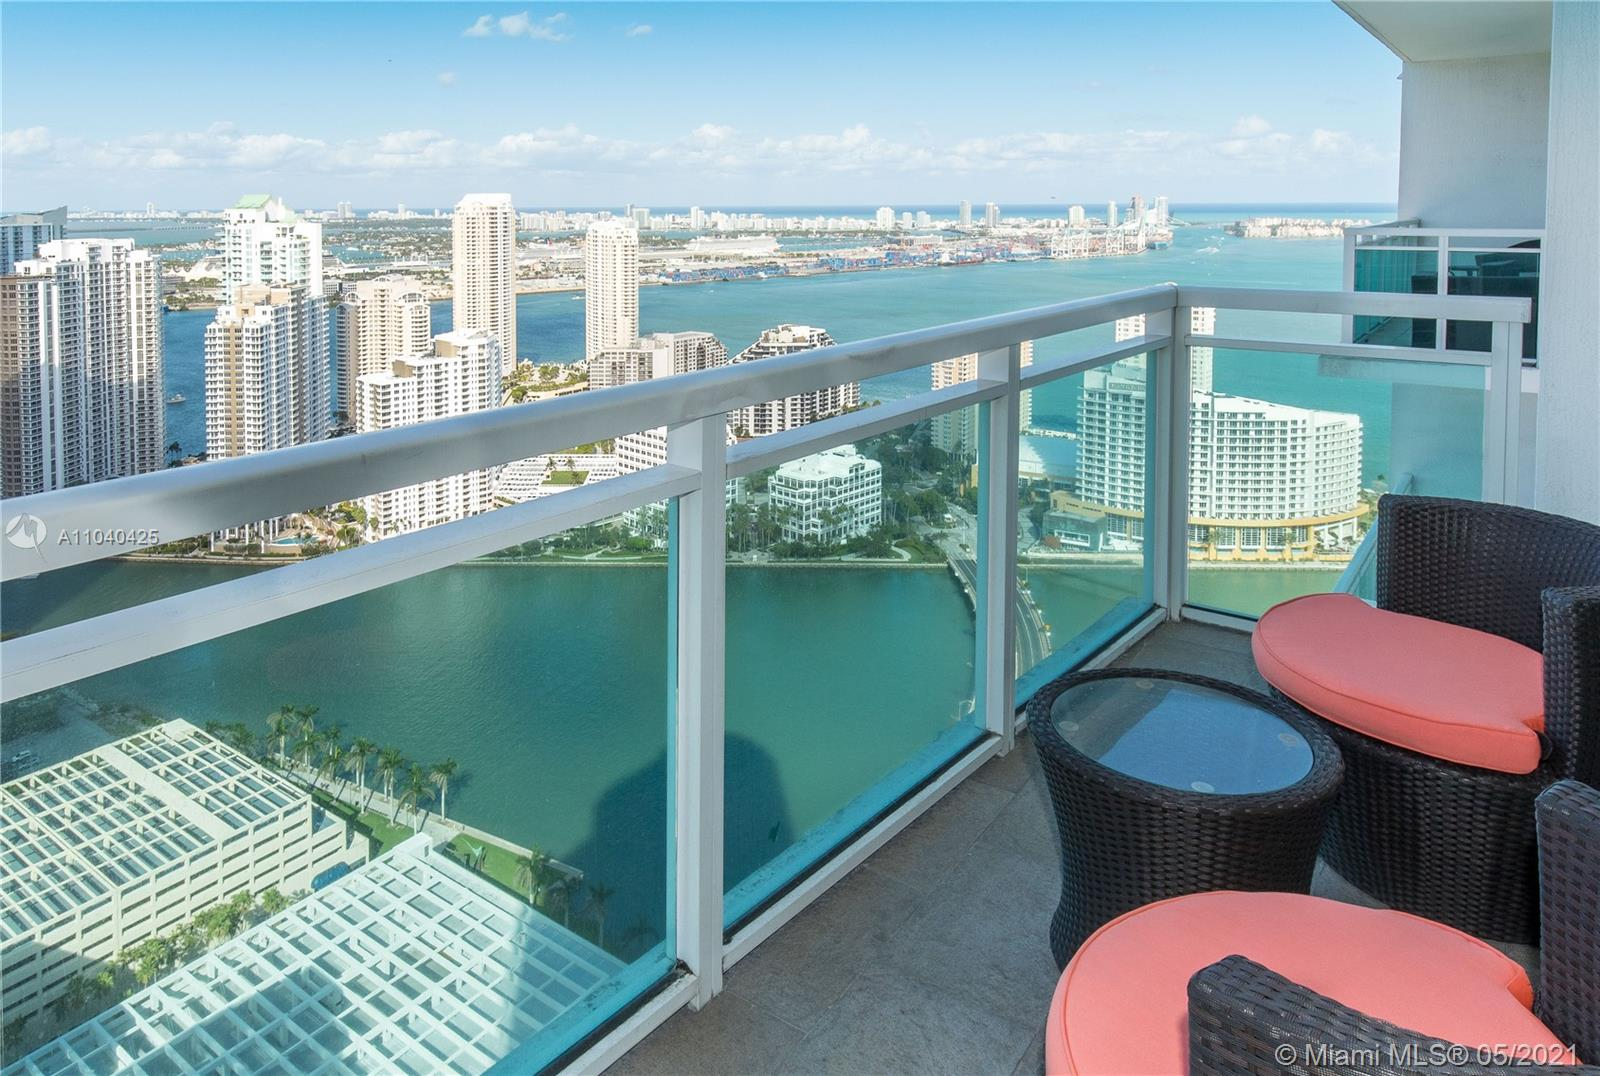 The Plaza on Brickell 1 #4706 - 950 Brickell Bay Dr #4706, Miami, FL 33131